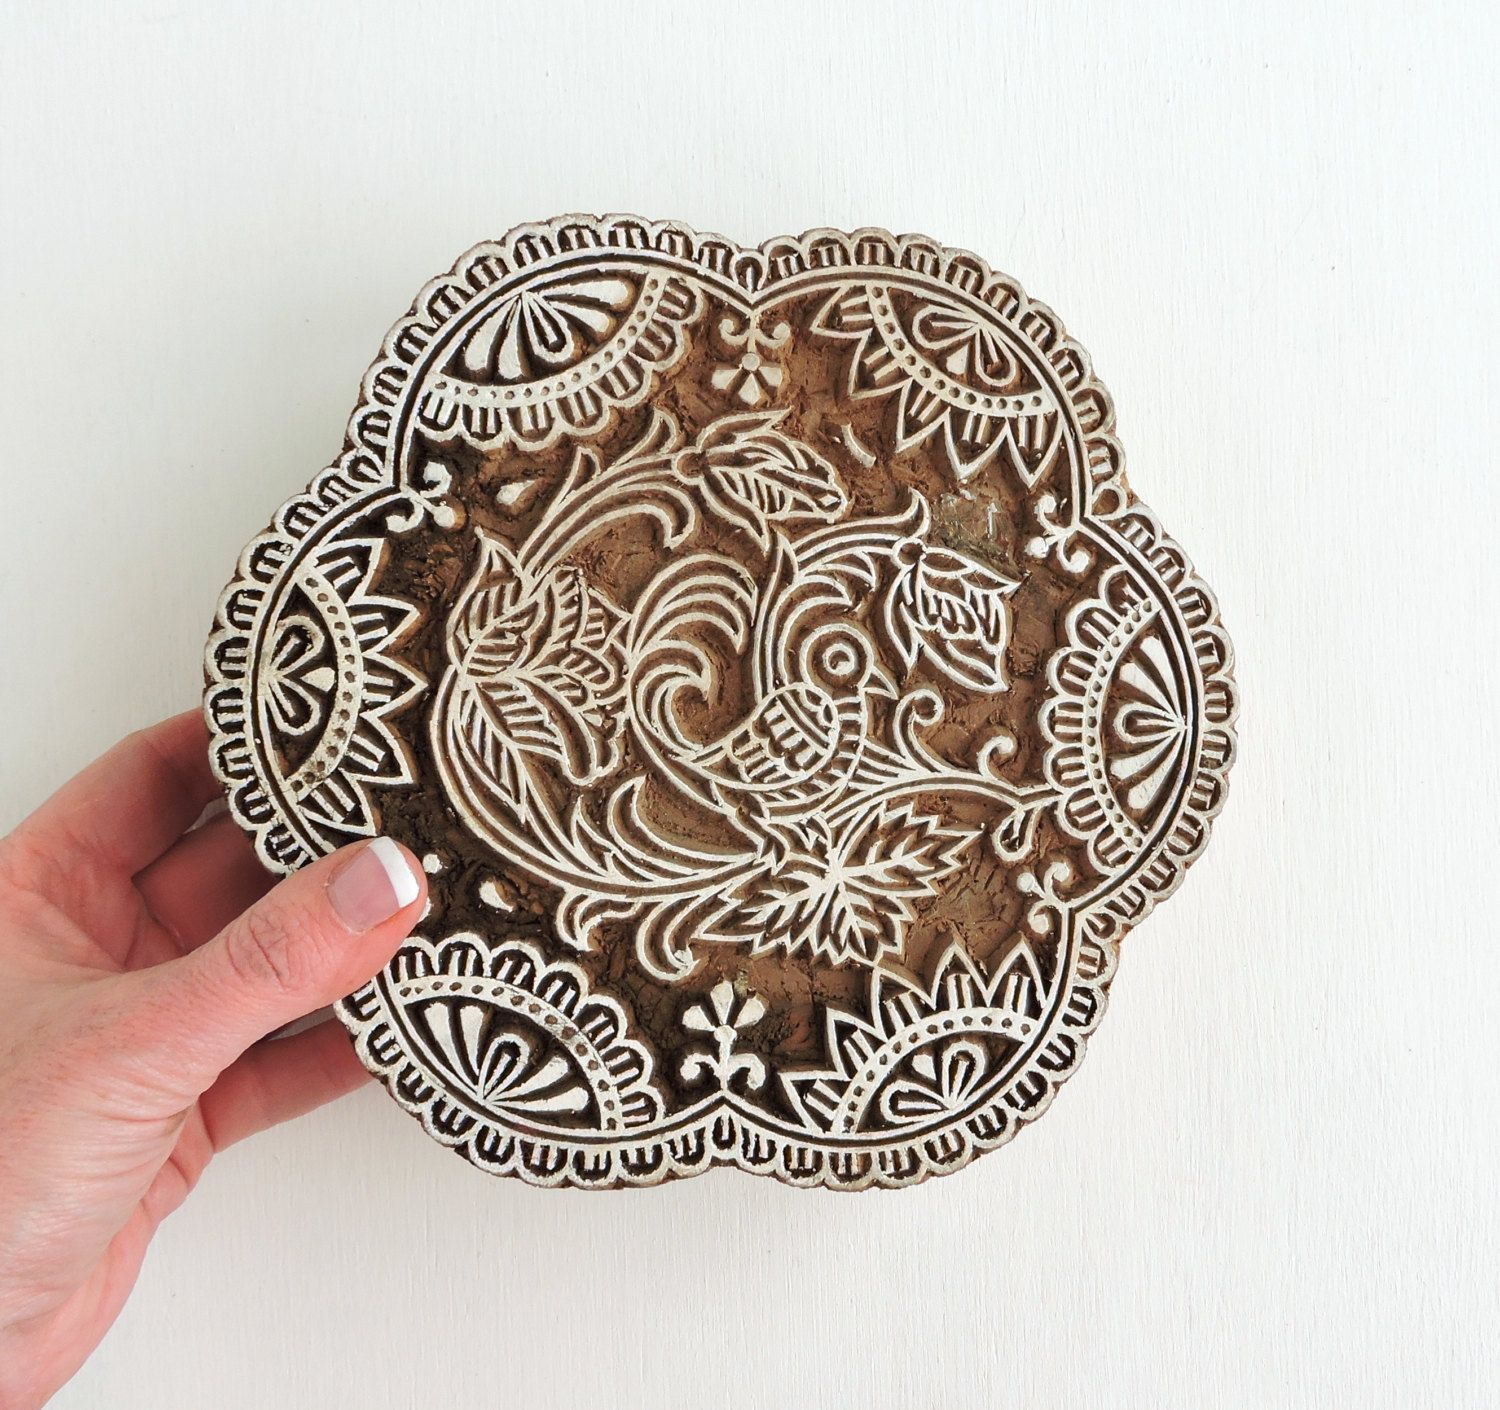 Large Bird Stamp: Scalloped Flower Stamp, Hand Carved Wood Stamp, Indian Printing Block, Wooden Craft Textile or Clay Stamp, India Decor by DelhiDaze on Etsy